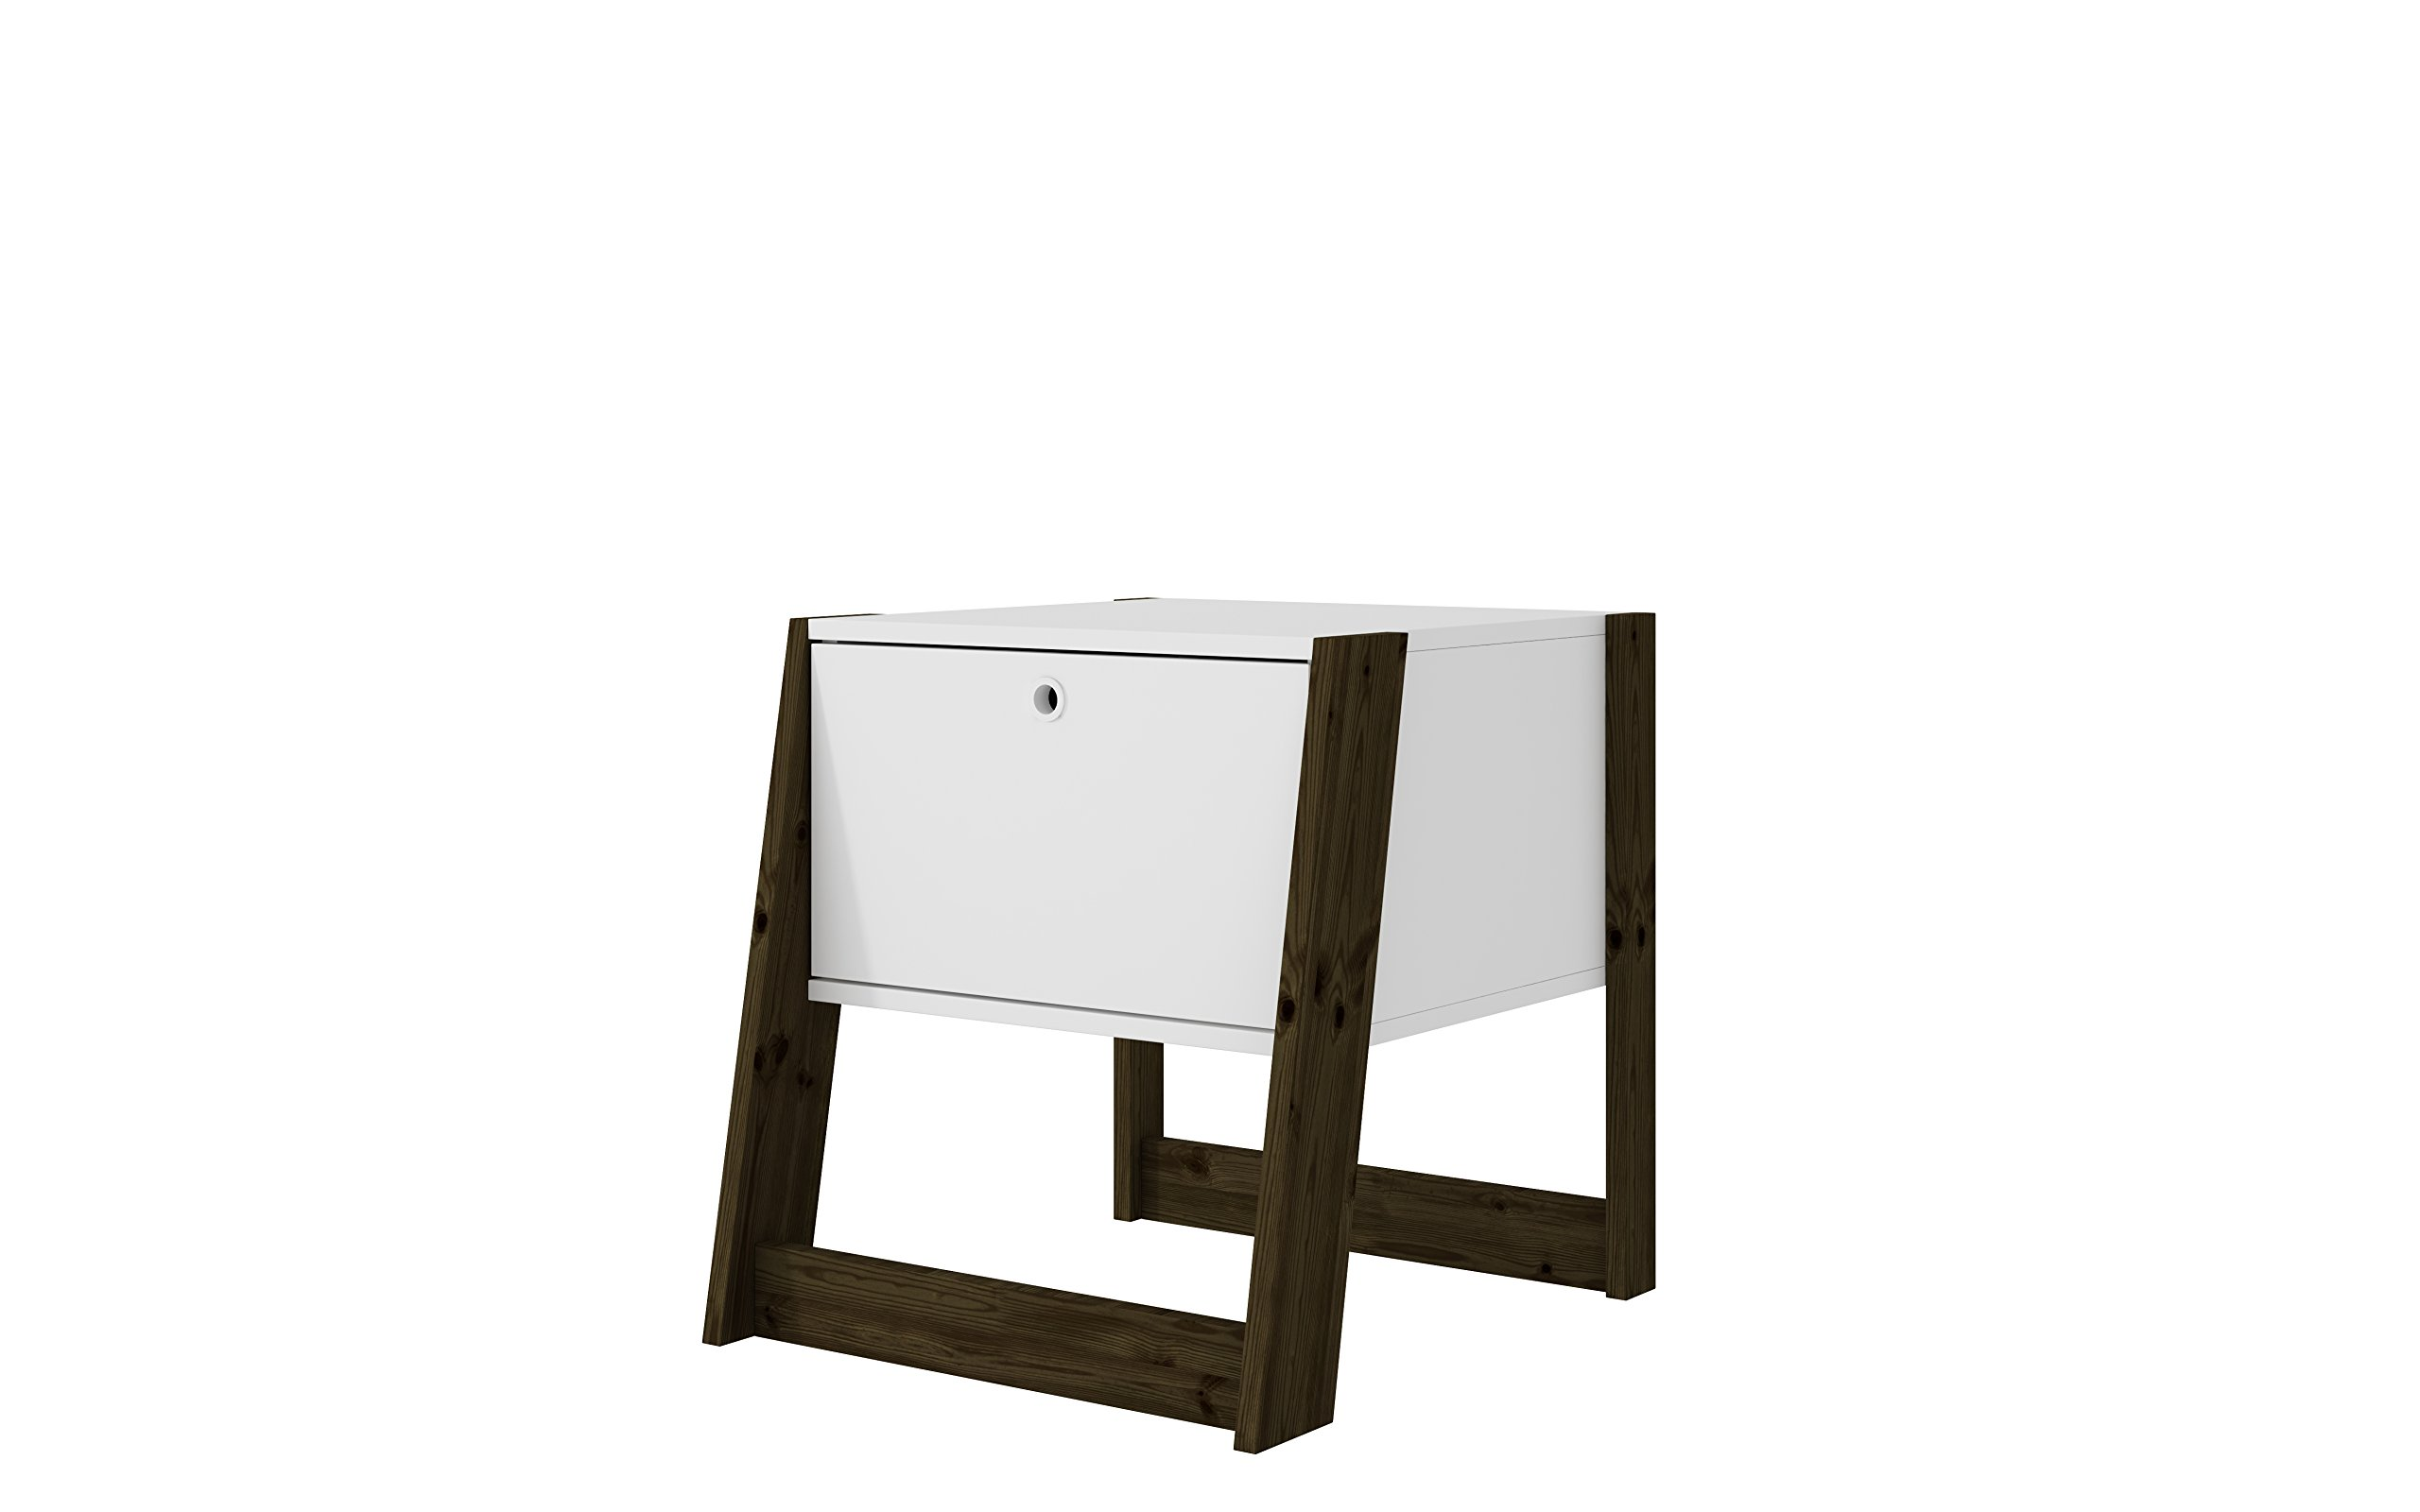 """Manhattan Comfort Salvador Collection Modern Accent Bedroom Nightstand With Wooden Frame and Storage Cabinet, Wood/White - Perfectly Sized: With Great Dimensions of 18.94"""" x 20.28"""" x 21.18"""" and a Total Weight of 21.93 lbs., This Nightstand Can Easily Be Placed By Your Bedside to Provide Practical Storage Space. Designed With a Versatile Appeal, The Dimensions Make it Easy to Arrange in Your Bedroom Durable Craftsmanship: Constructed With Durable Pine Wood, This Piece Has Been Designed to Be Long Lasting For Several Years to Come. The Finished Piece Comes in Multiple Varieties That Enhance The Appeal and Make it a Must Have. The Storage and Drawers are Practical, Making it Easy to Put Away a Variety of Items and Maintain an Elegant Appeal in Your Home Multifunctional Design: This Nightstand has Been Designed to Enhance Your Room Décor and Also Provide a Look of Elegance While Ensuring Your Privacy - This Nightstand Contains Hidden Compartments so Your Personal Items Can Remain Undisclosed and The Top Display Can Be Used For Candles, Confections or Books - This Nightstand Can Be a Bedside or End Table in Your Bedroom - nightstands, bedroom-furniture, bedroom - 716pNBaR1YL -"""